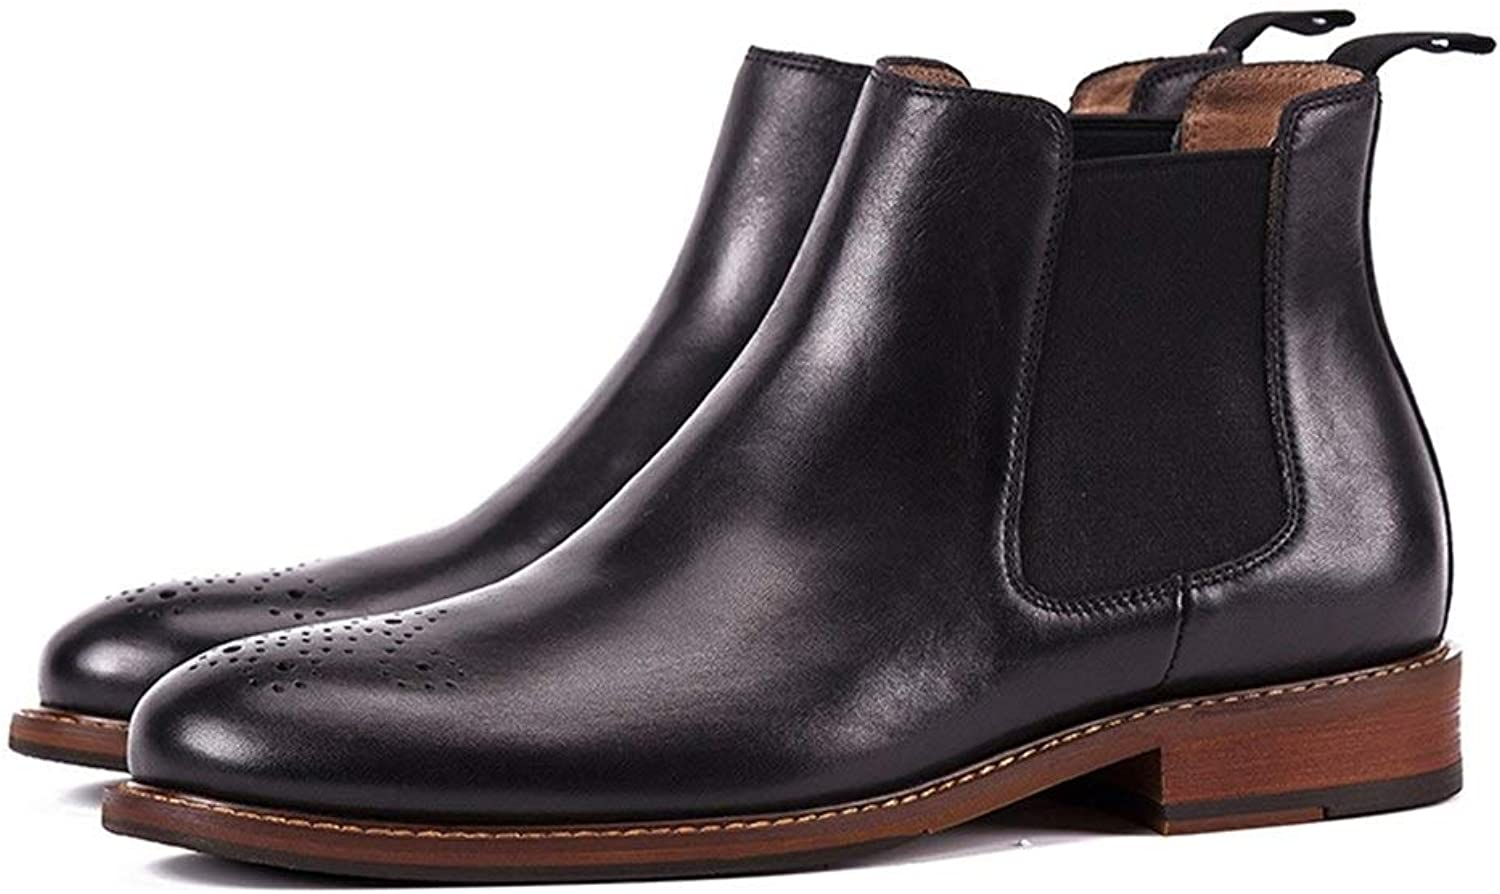 Men's Chelsea Boots Leather Casual Boots Leather Boots Handmade Leather Autumn and Winter European and American (color   Black, Size   8.5UK)